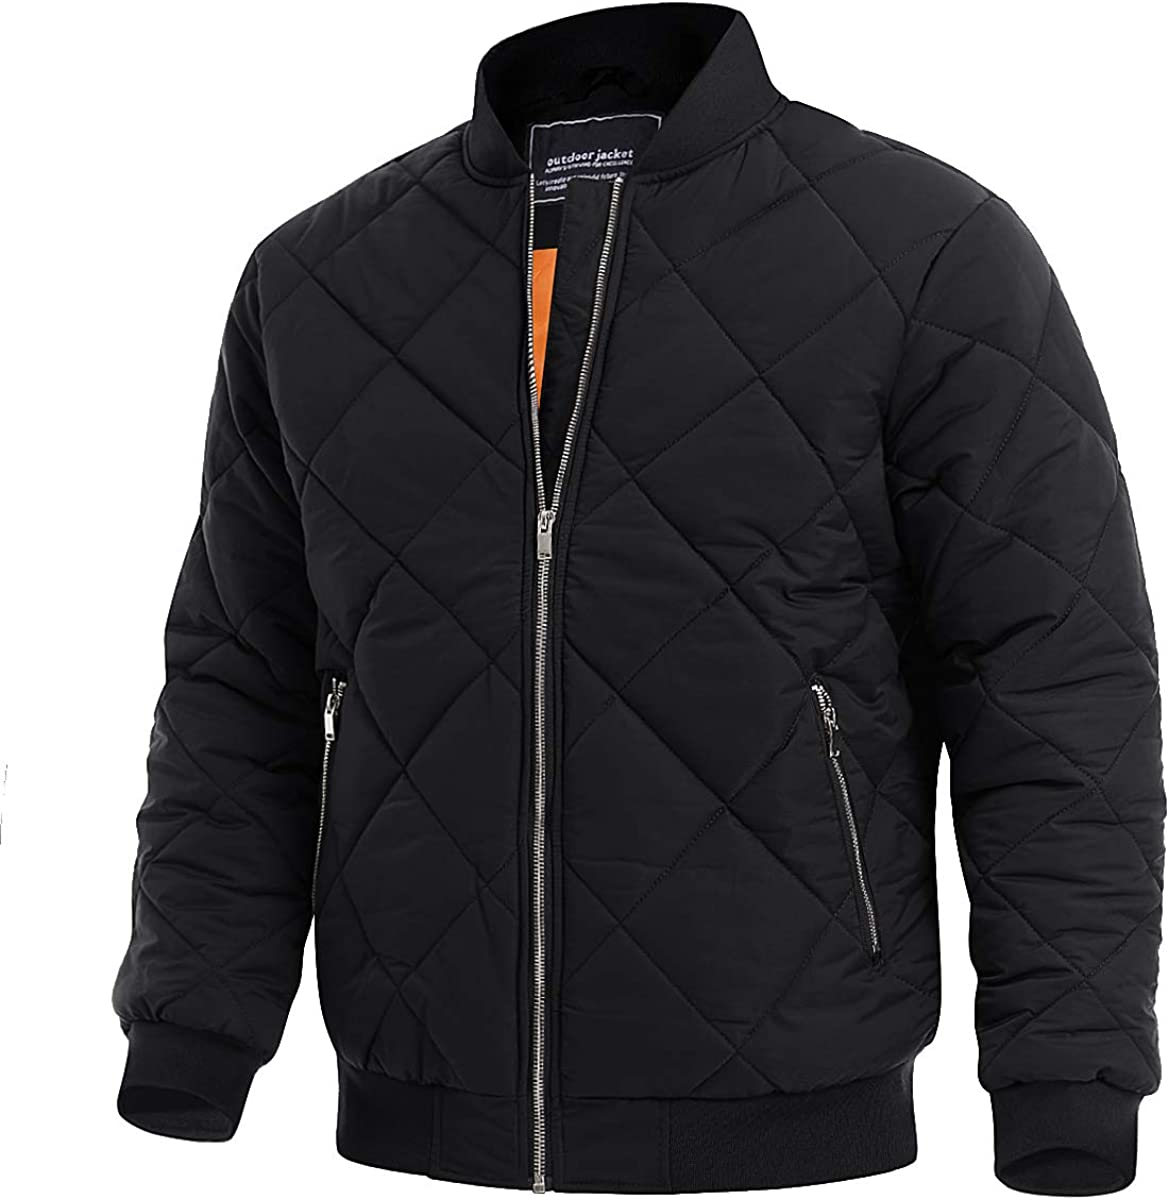 TACVASEN New item Men's Jackets Winter Padded Discount is also underway Athletic Casual Win Outwear